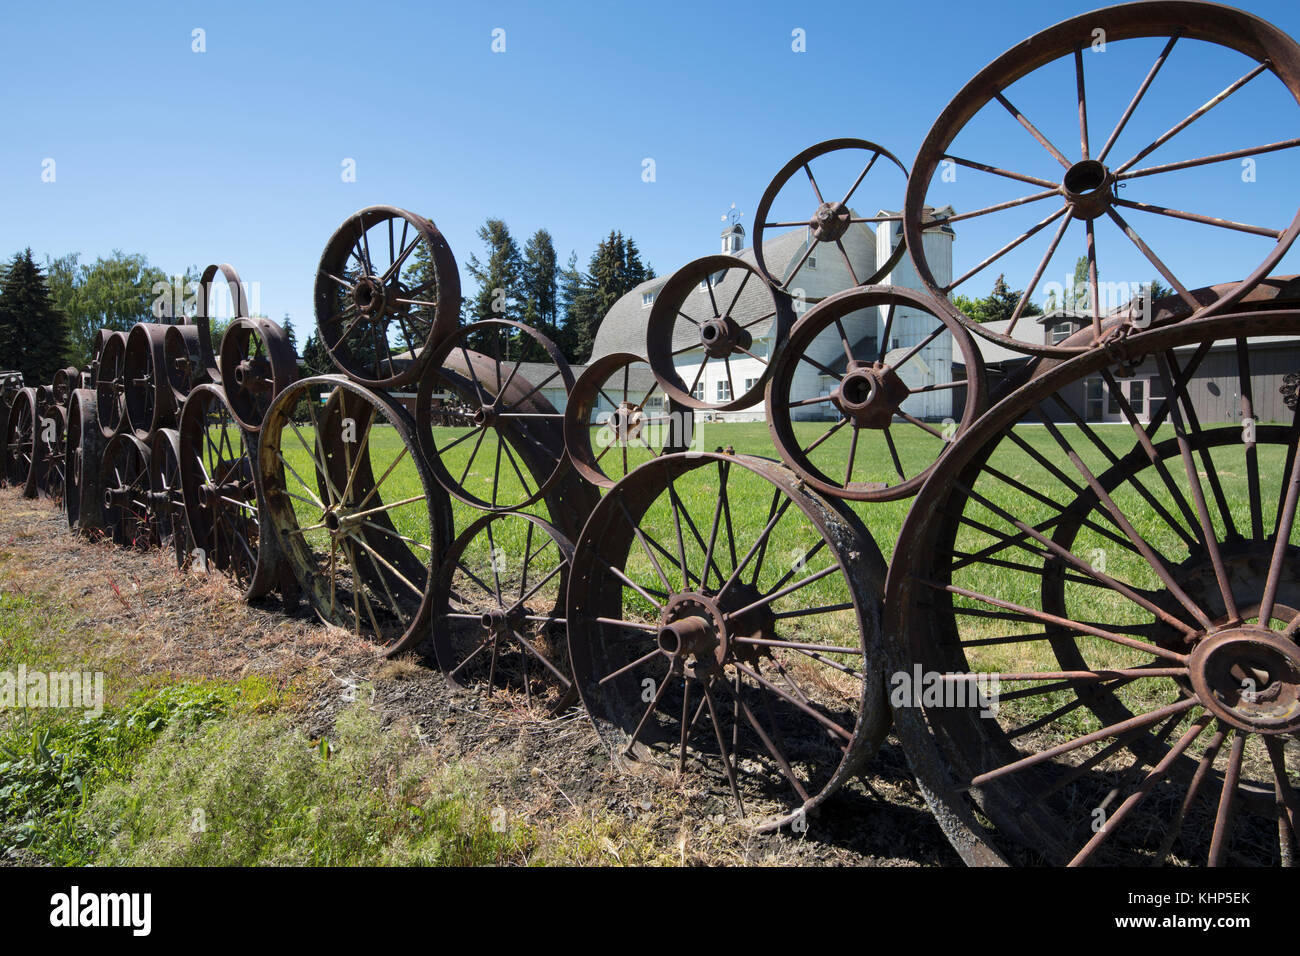 Old farm fence made of old rusty wagon & tractor wheels at the Artisans at the Dahmen Barn Palouse Scenic Byway - Stock Image